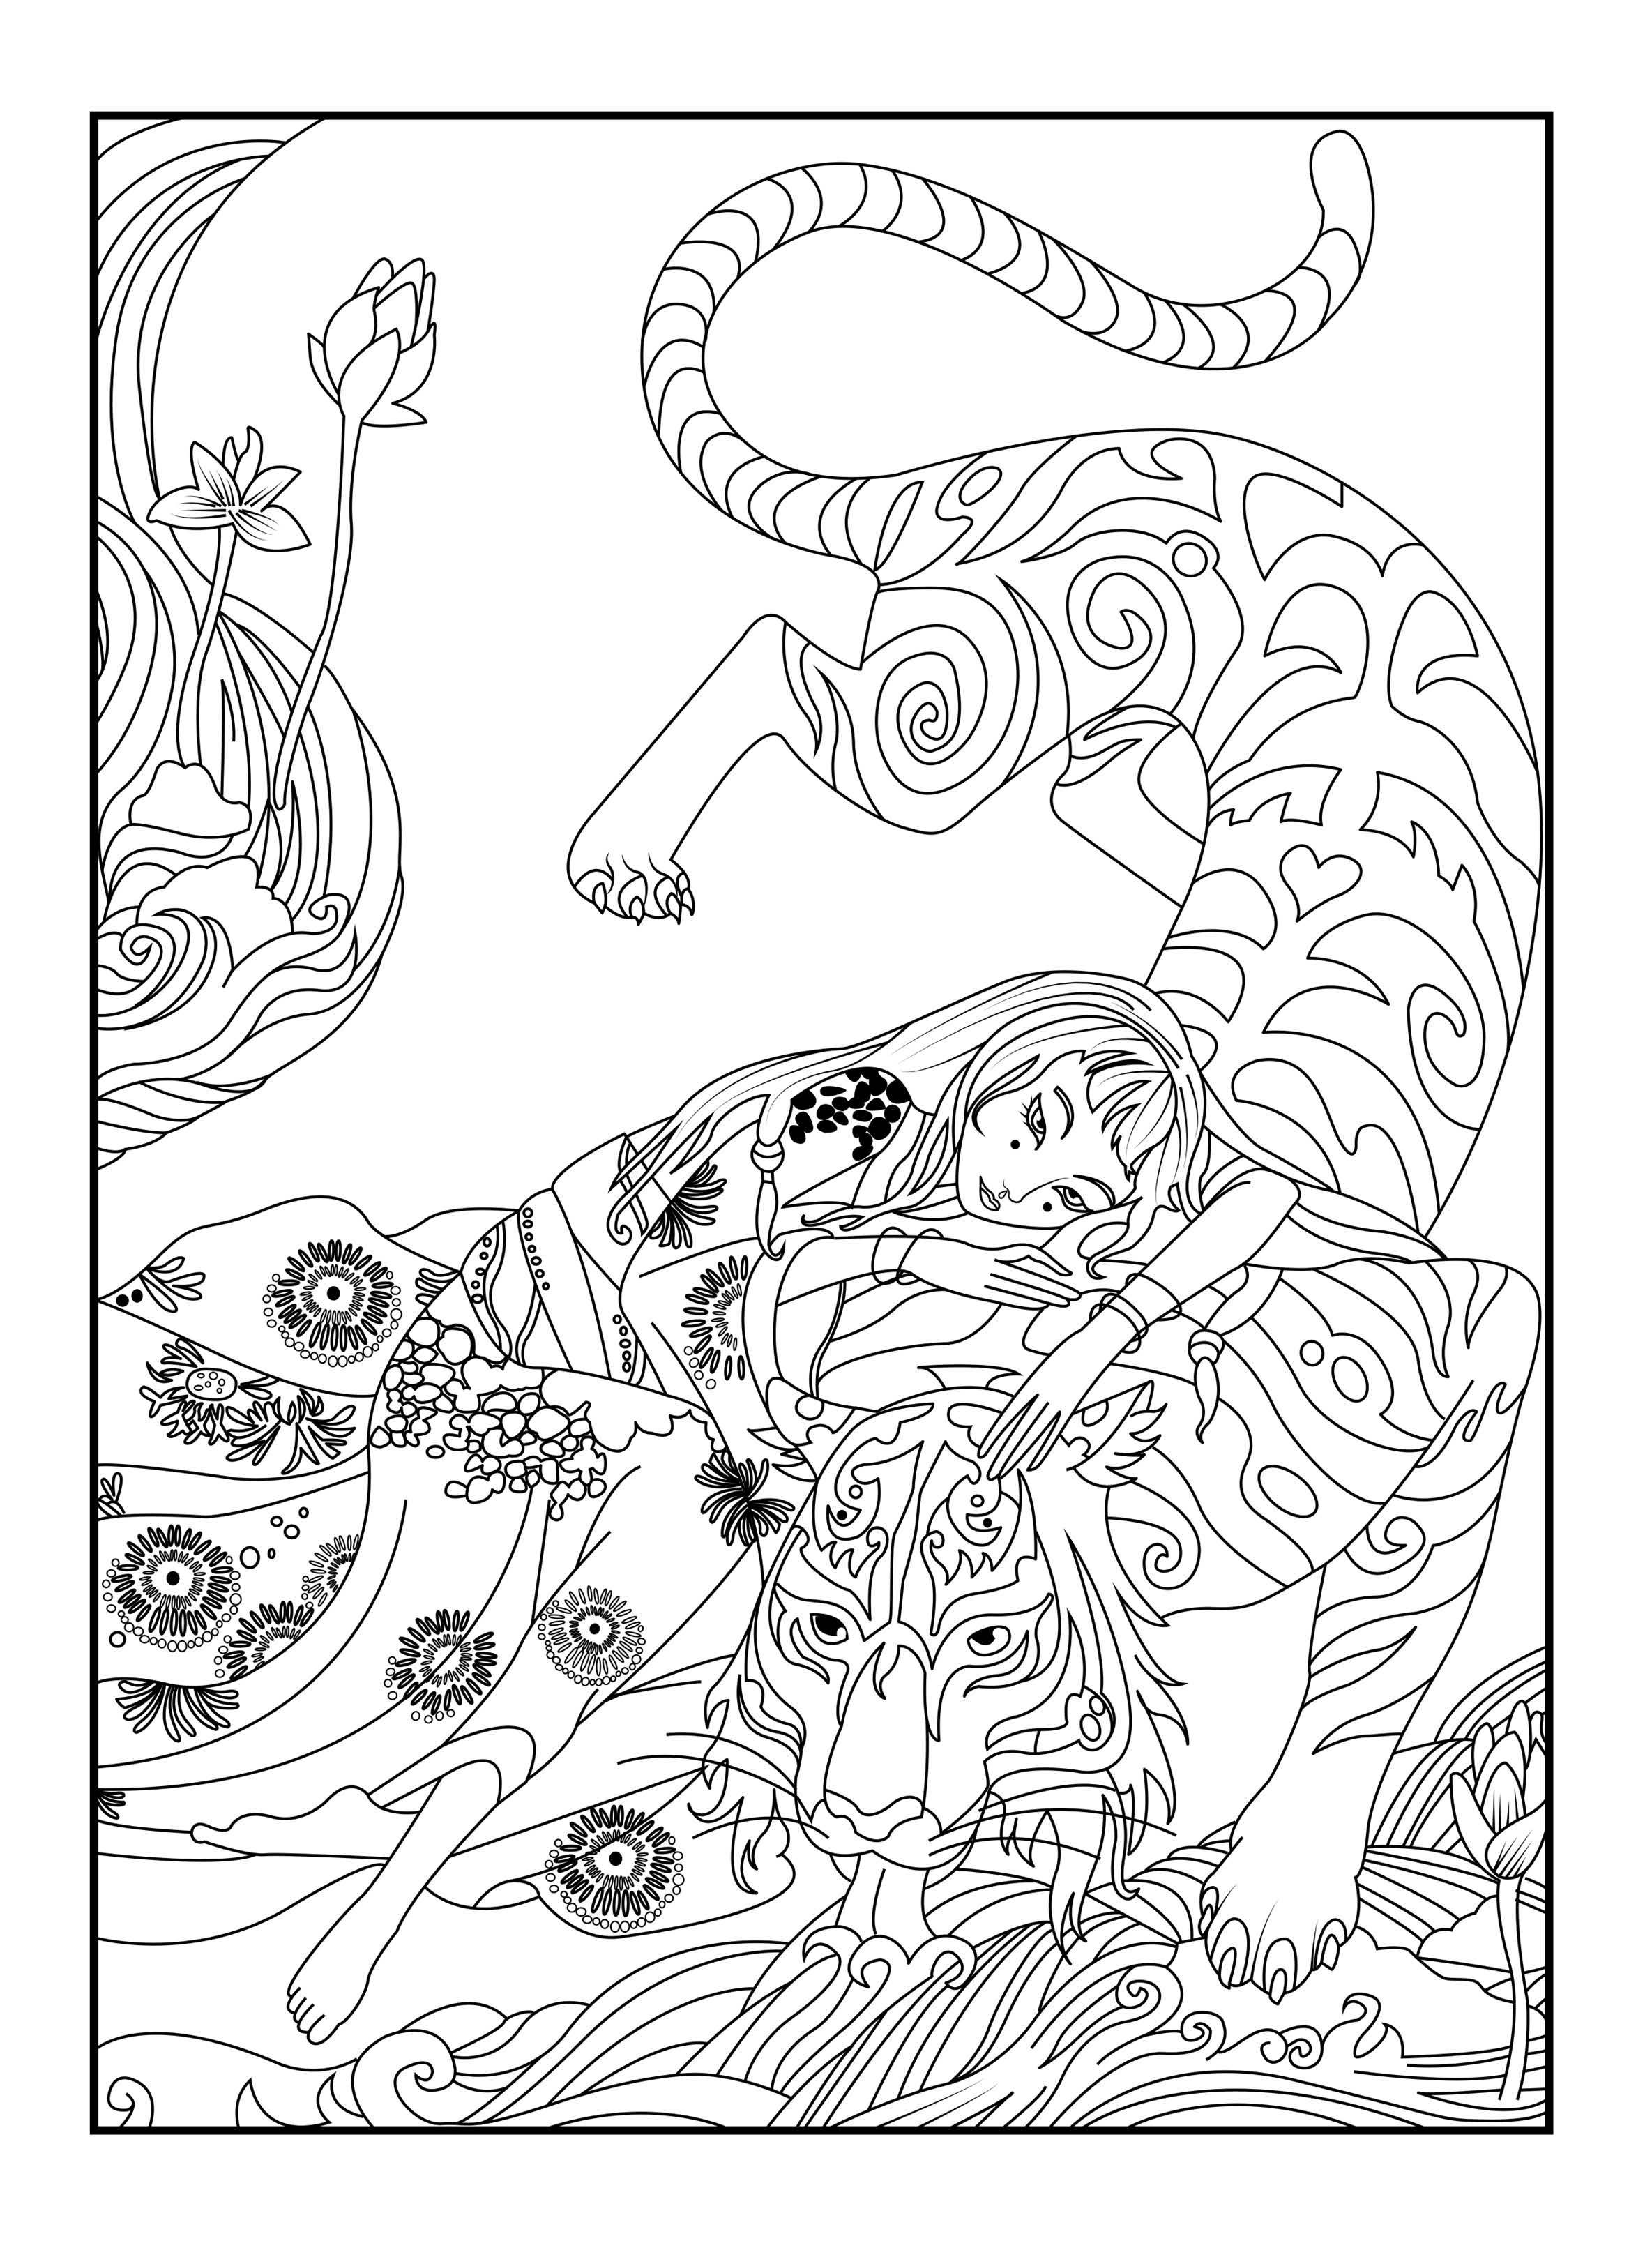 Here is a coloring page with a tiger by Cline From the gallery